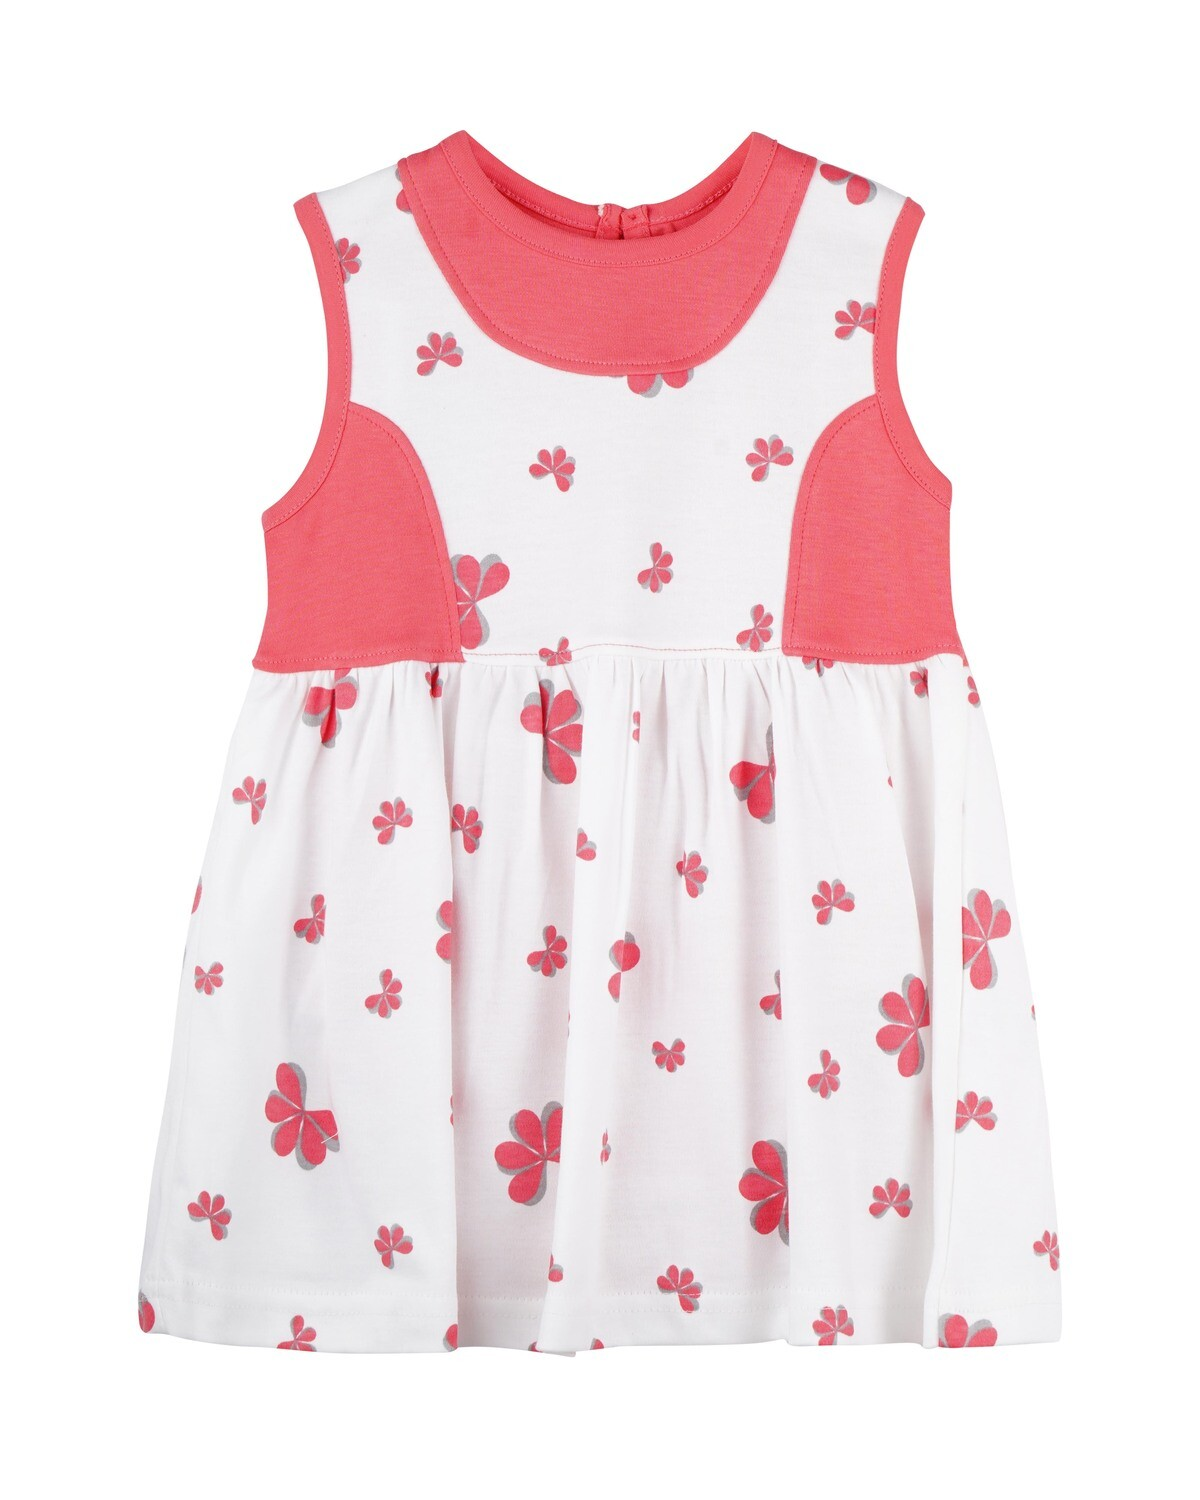 ESTELLE Calipso Coral Sleeveless Frock and Panties for Baby Girls